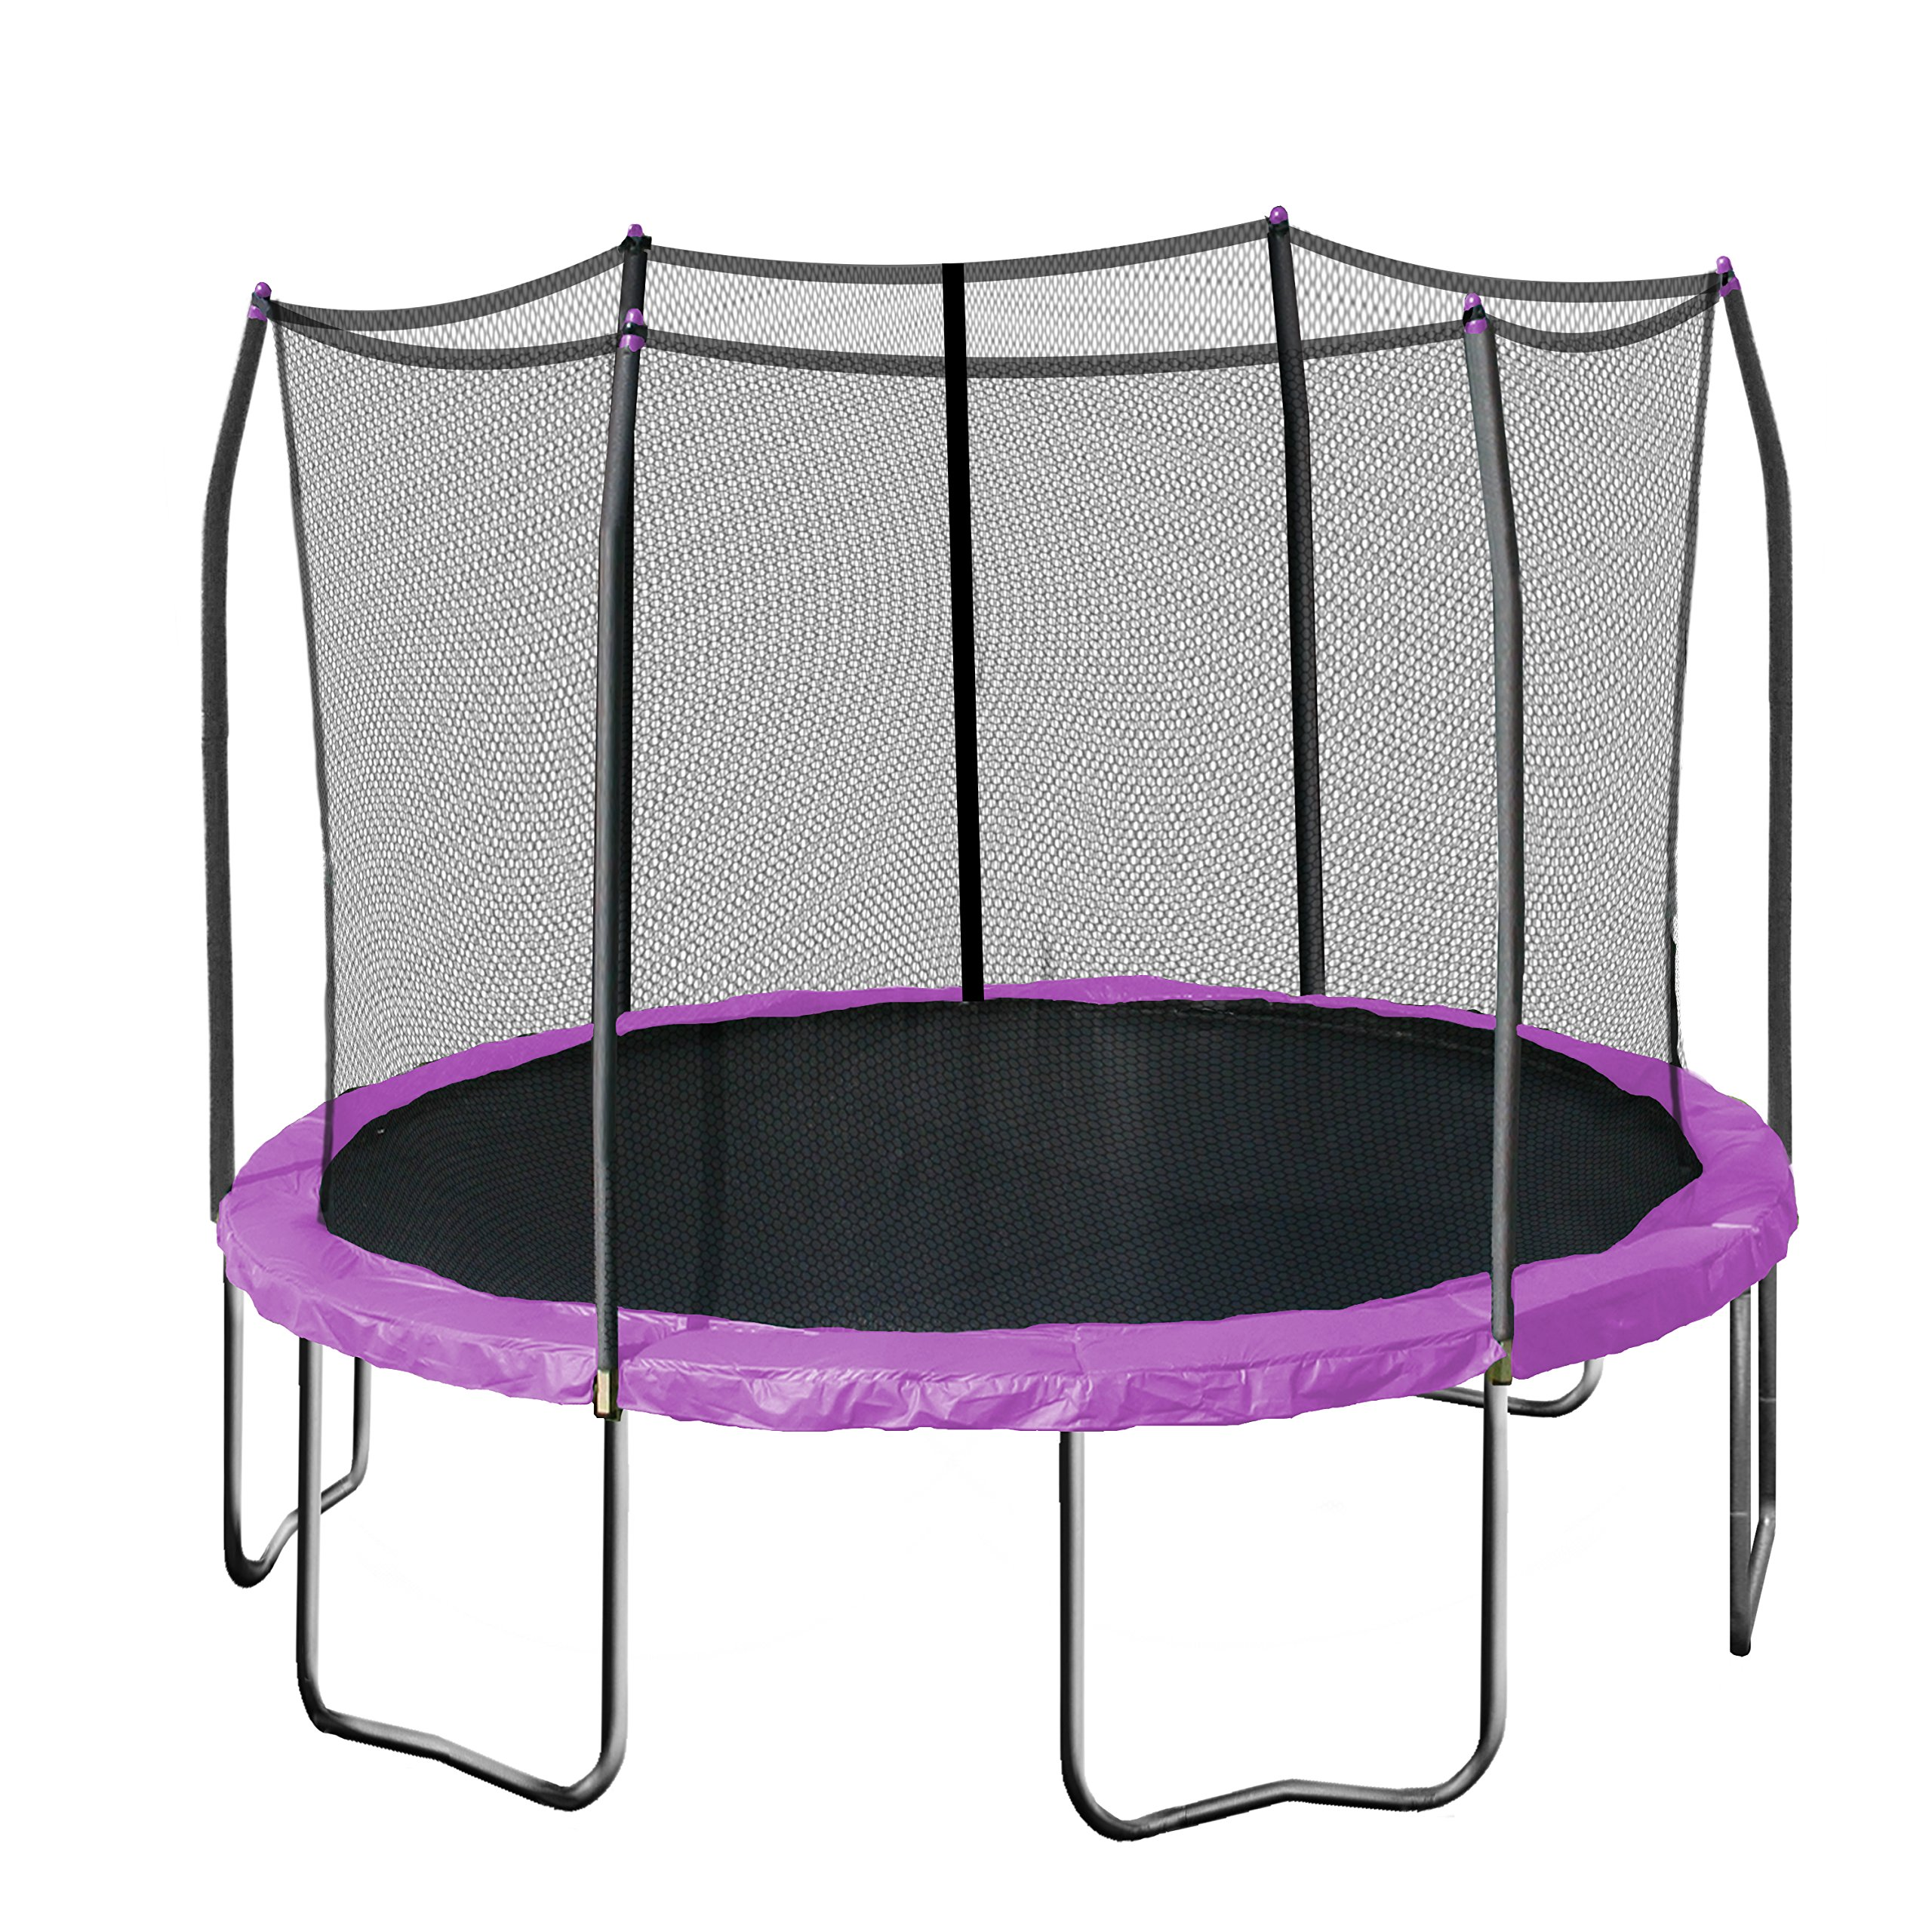 Skywalker Trampolines Round Trampoline with Enclosure, Purple, 12-Feet by Skywalker Trampolines